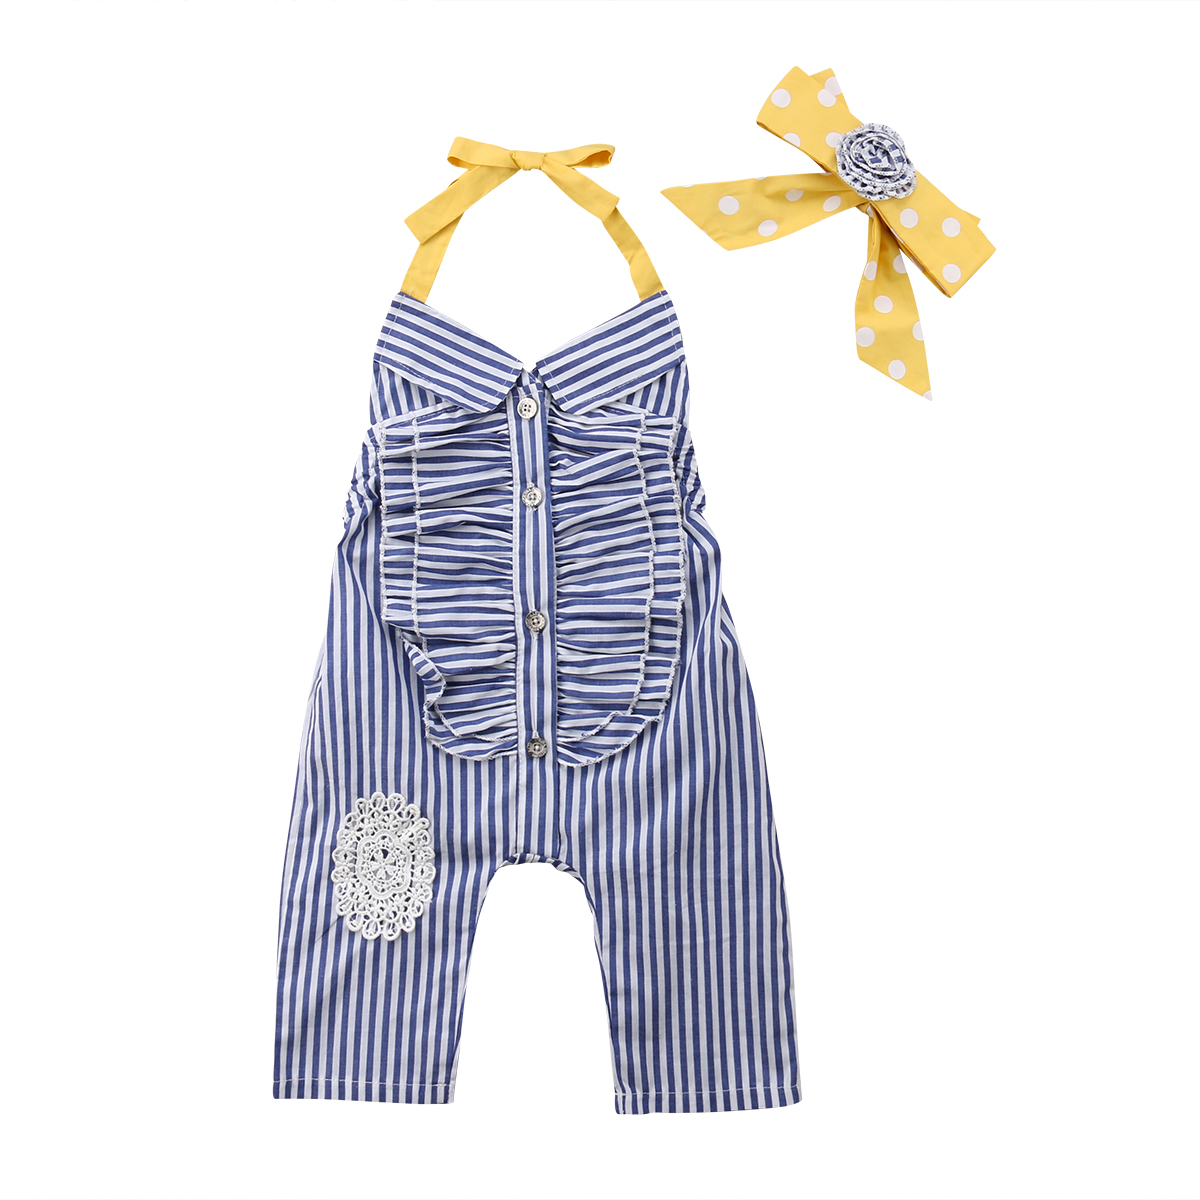 Mother & Kids Girls' Baby Clothing Bright Kid Baby Girl Clothes Striped Jumpsuit Harem Rompers Sleeveless Halter Overall Headband 2pcs Cotton Outfit Girl 1-6t Curing Cough And Facilitating Expectoration And Relieving Hoarseness